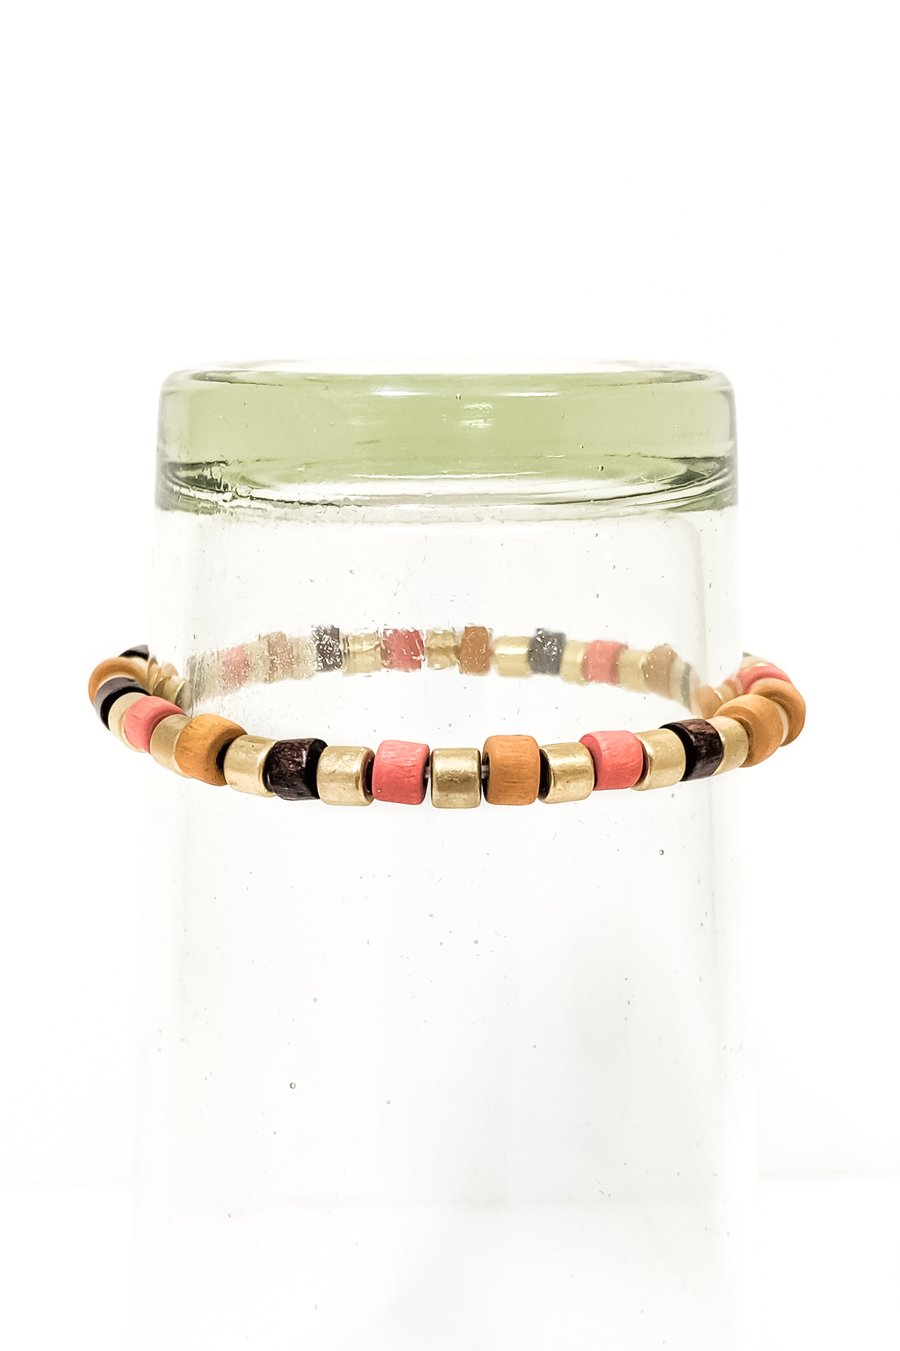 Gold & Wooden Bead Bracelet - Boutique 1780